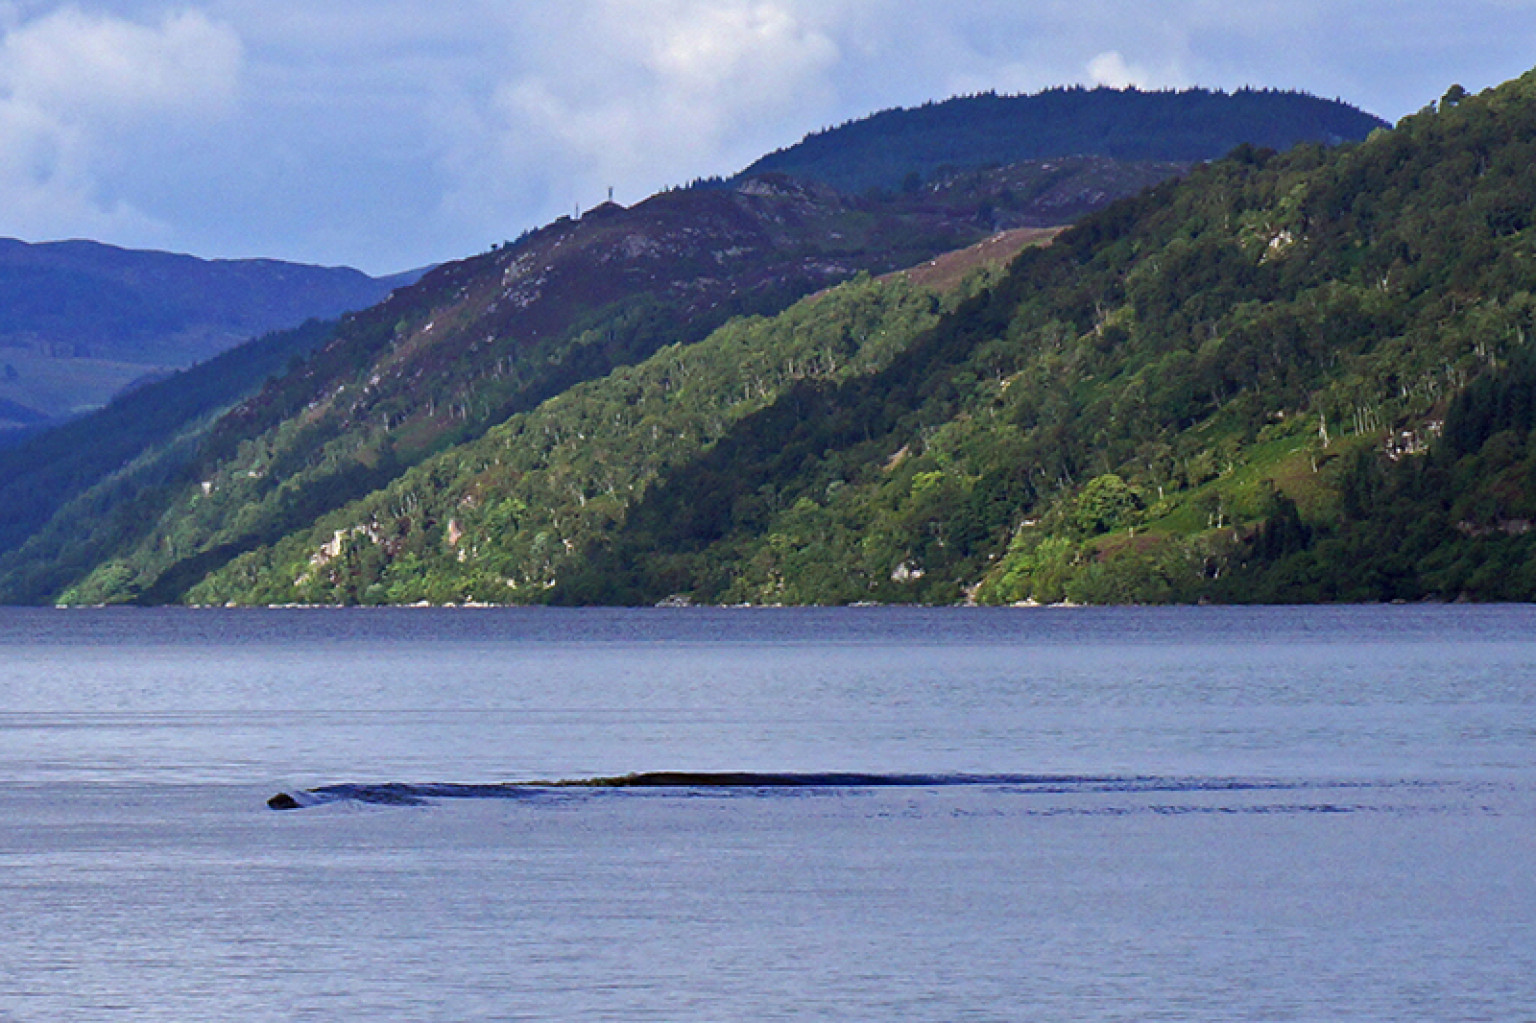 Loch Ness Monster Sightings 2014 Loch ness monster sighting